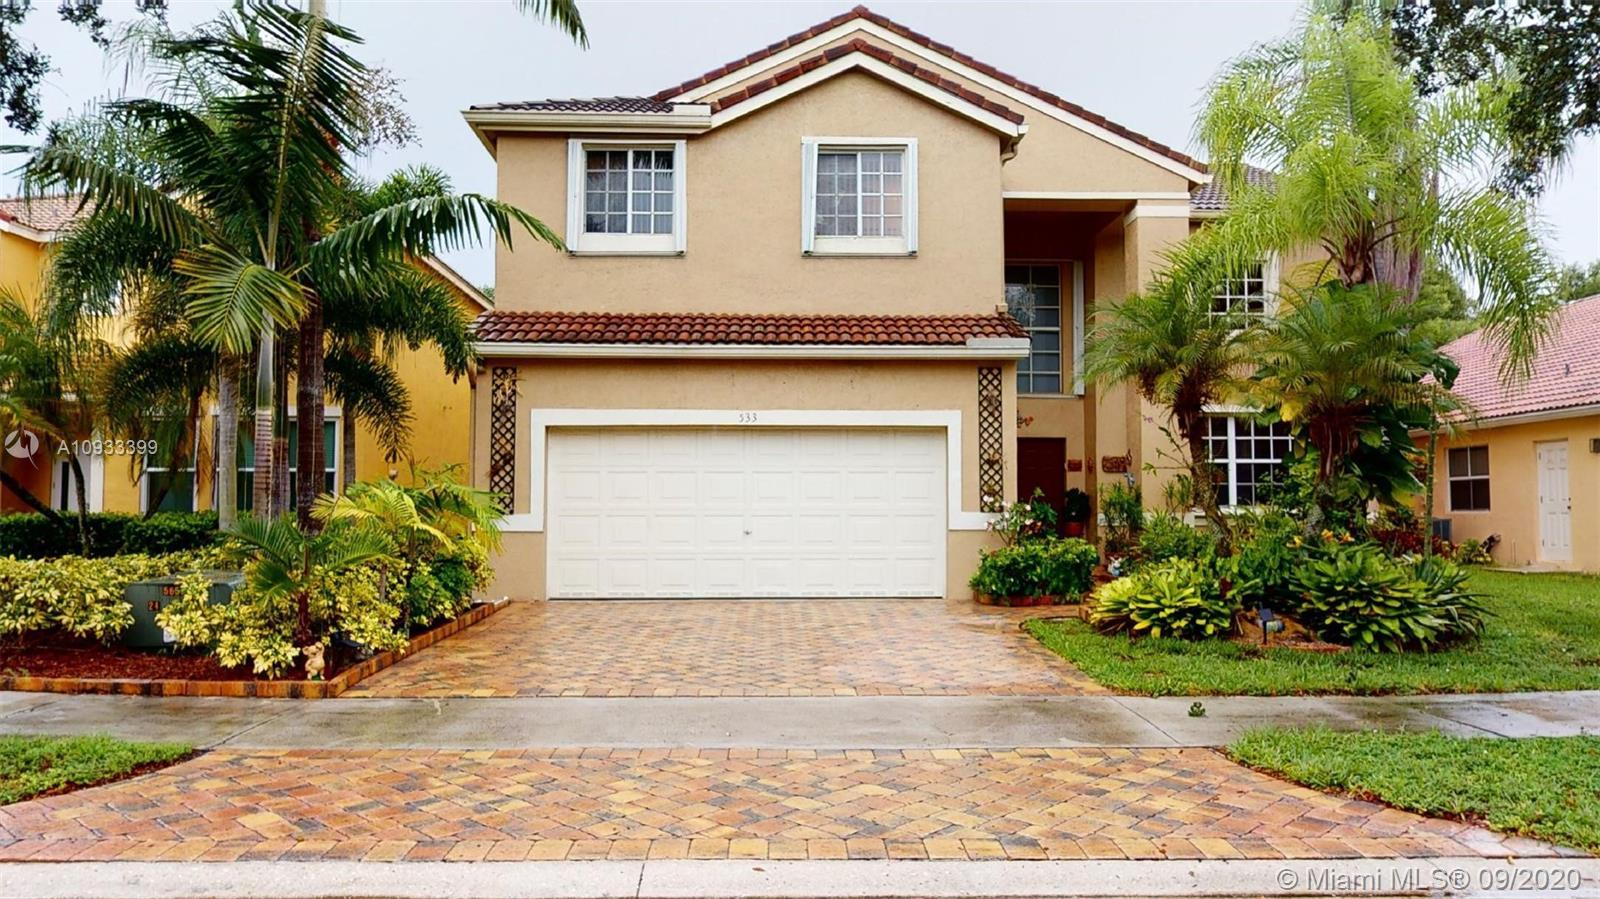 Four bedroom with den property, located in The Falls of Weston, one of US safest cities, and top sch